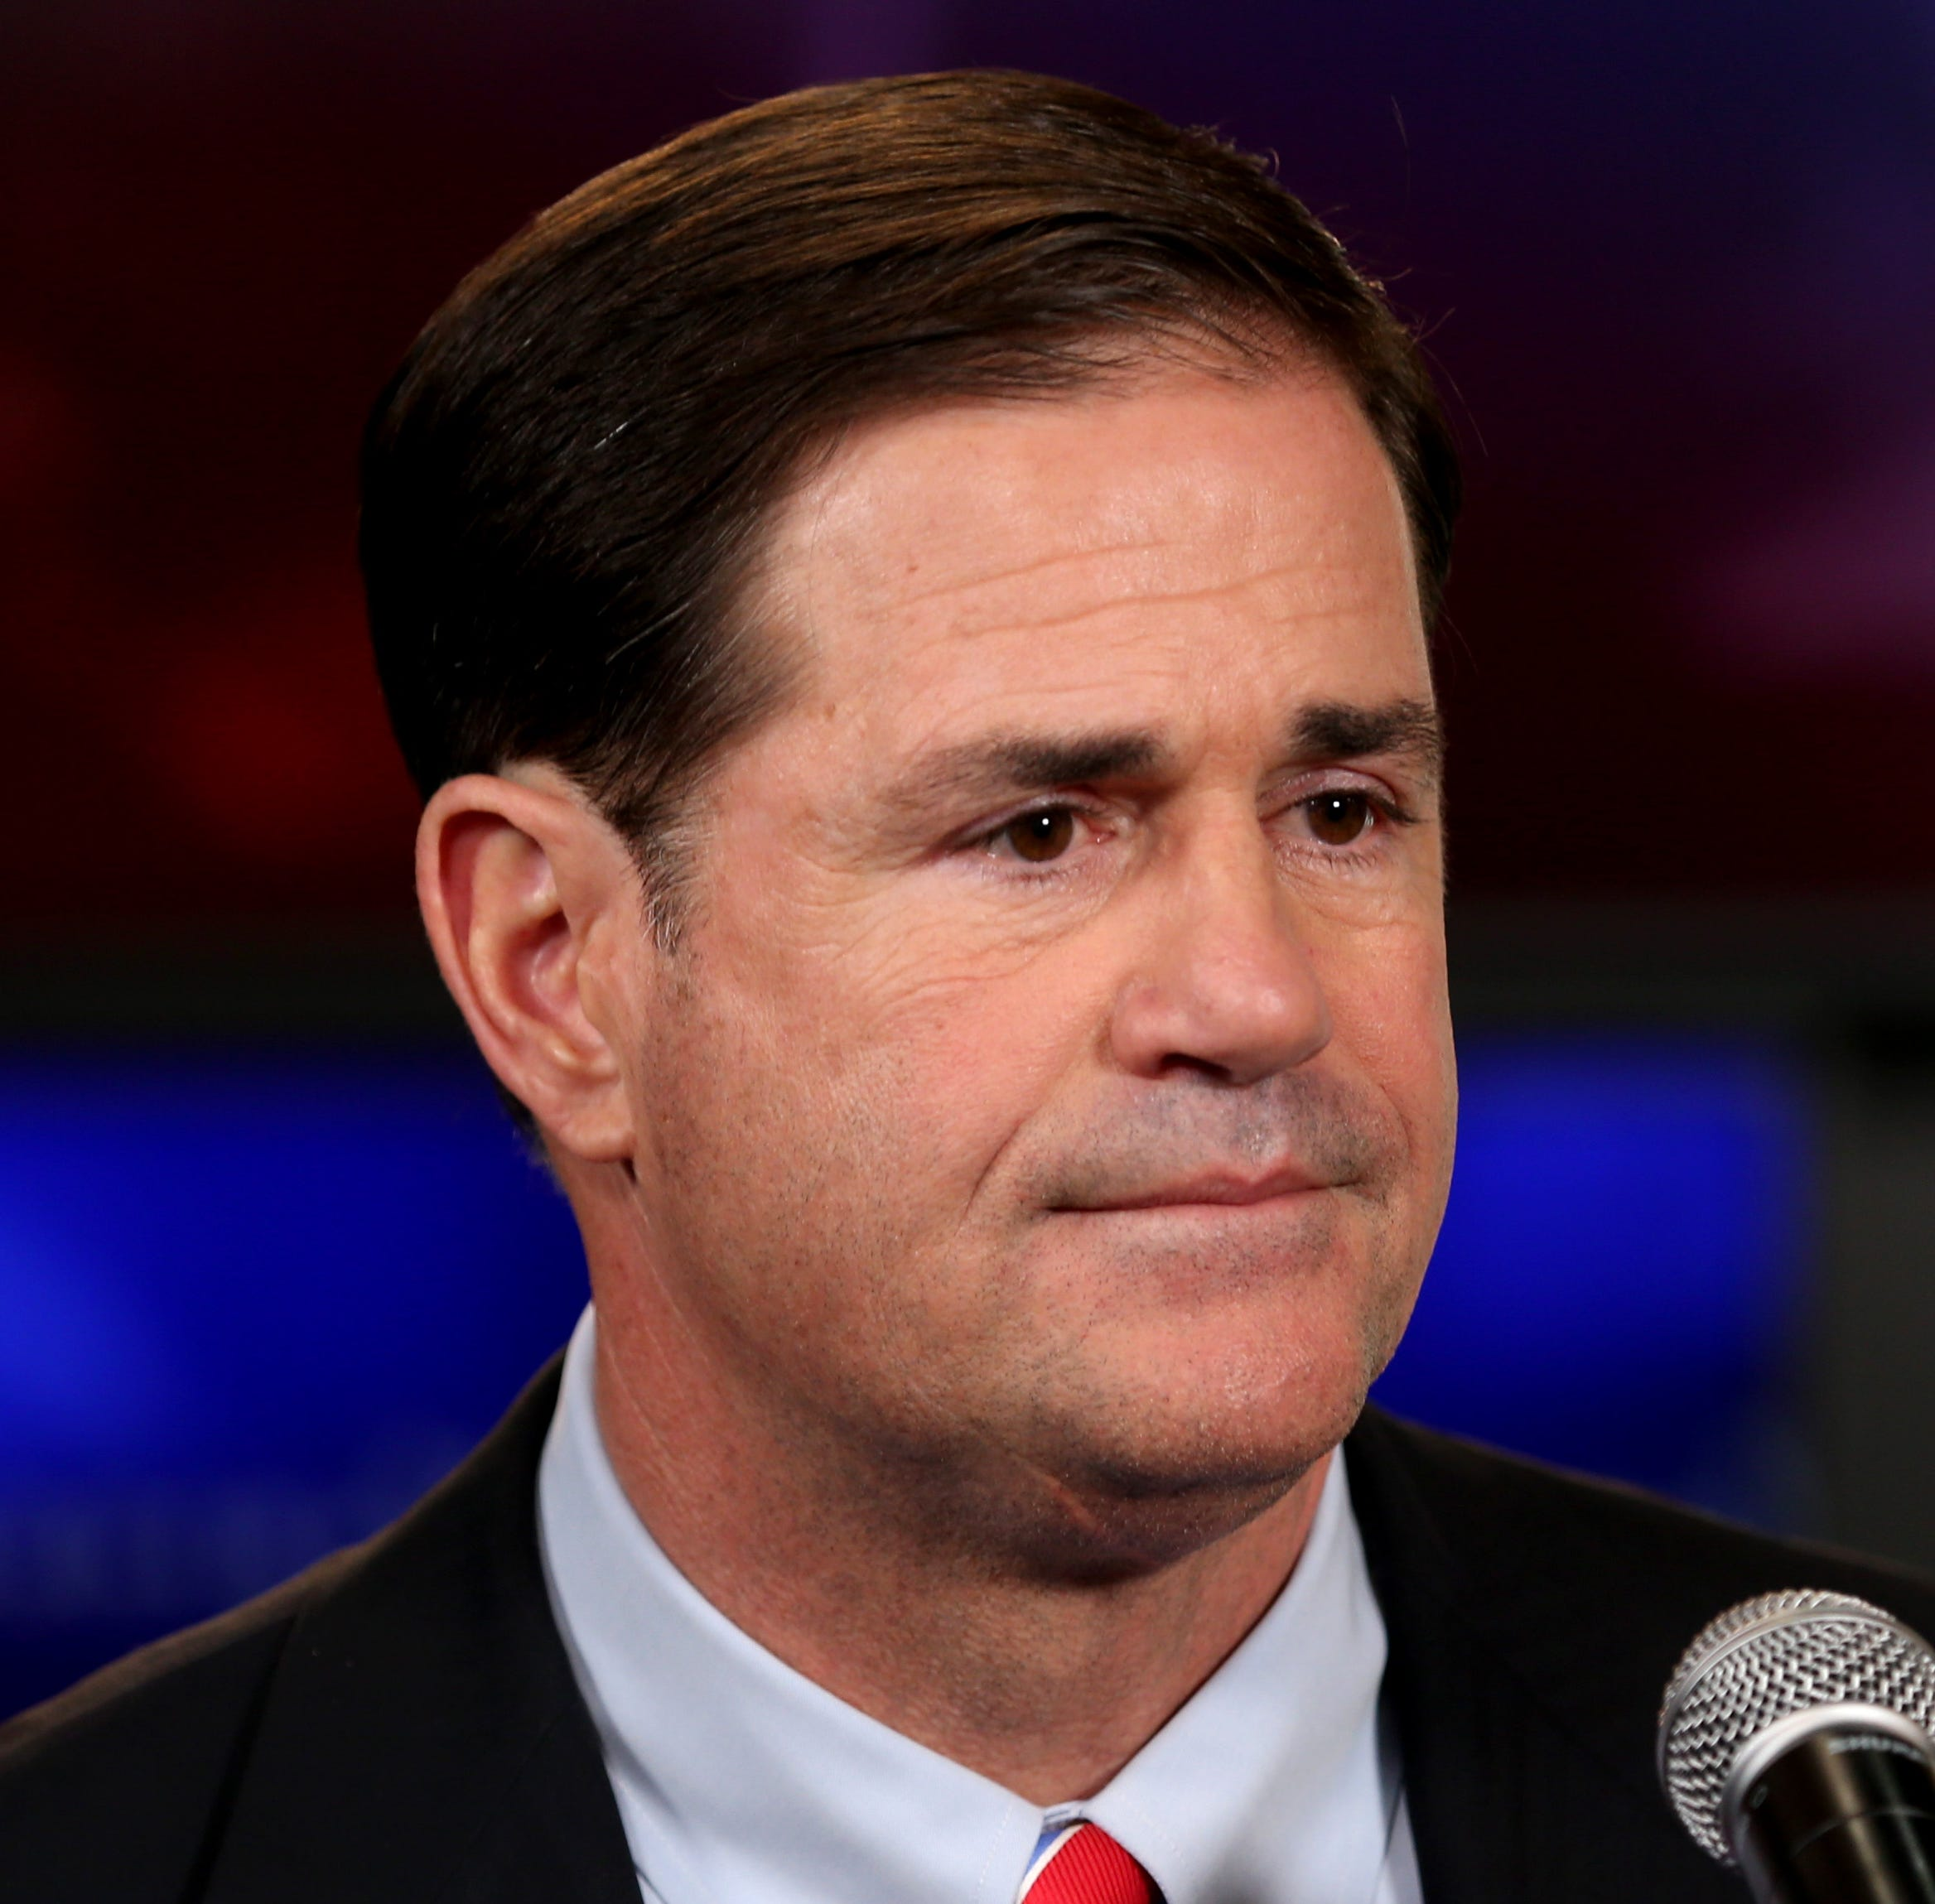 Is Gov. Ducey 'bracing for massive surge' of Trump baloney on the border?